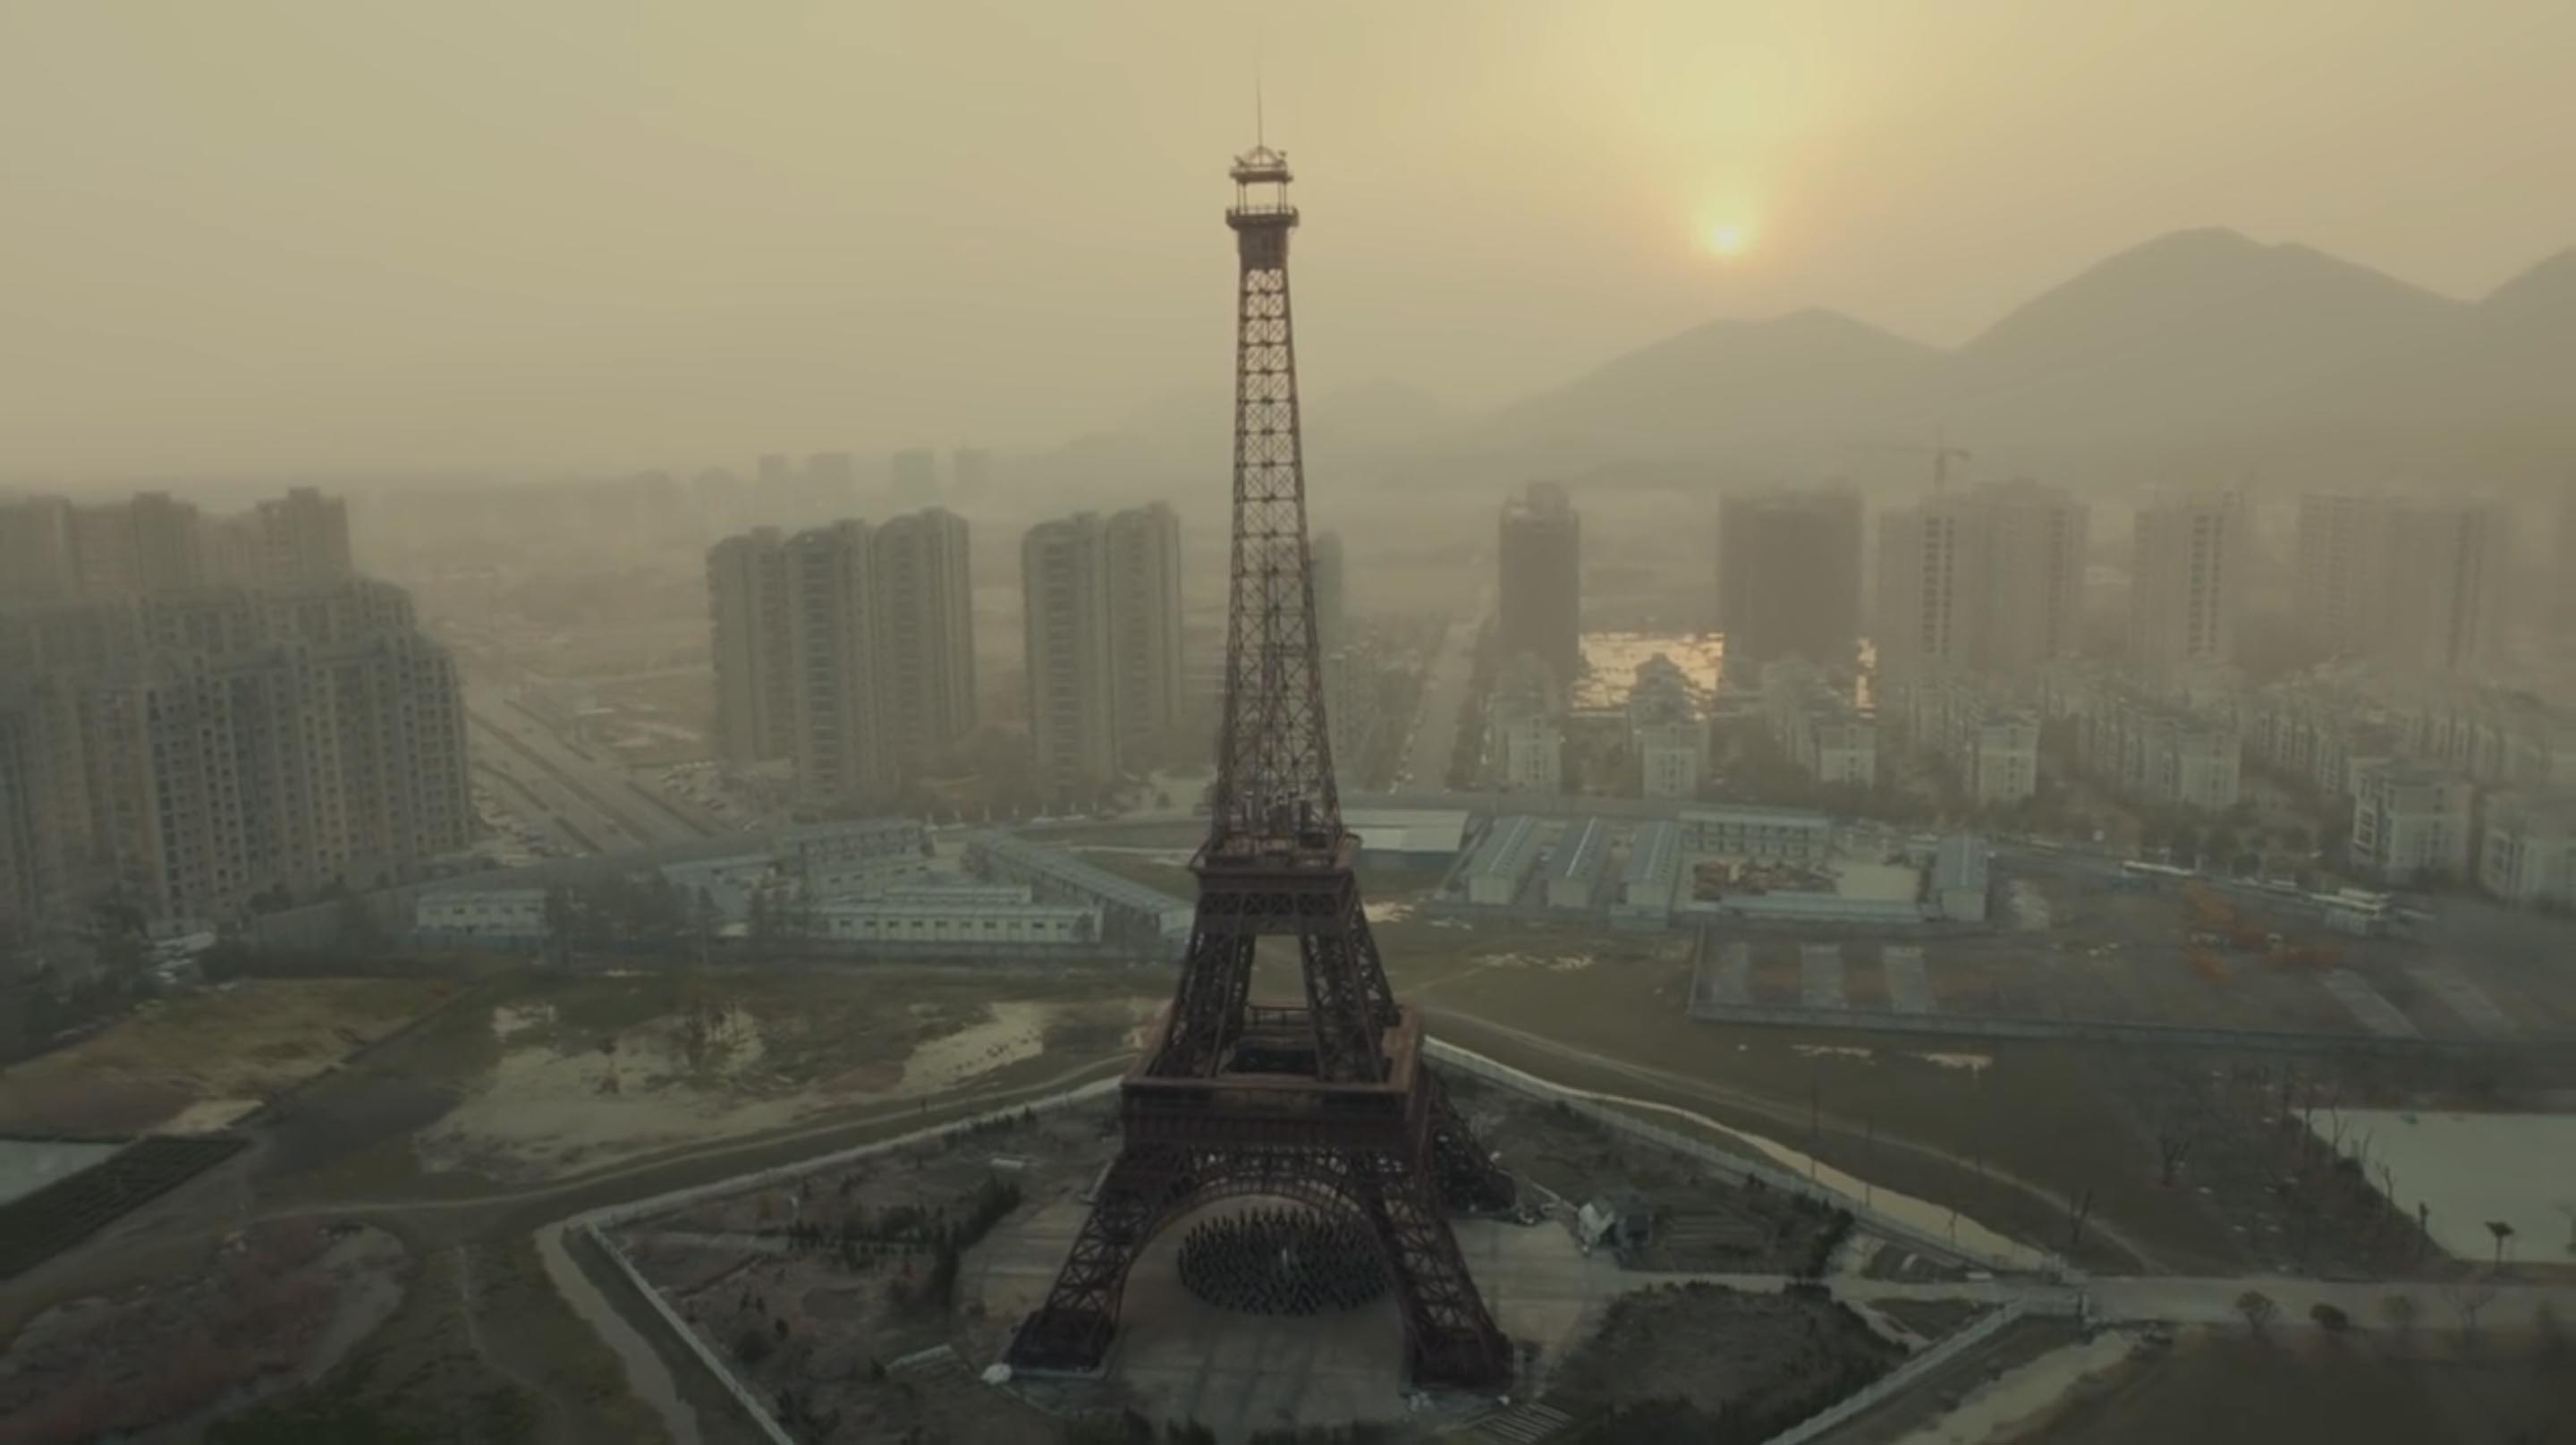 Jamie XX Gosh music video with Eiffel Tower